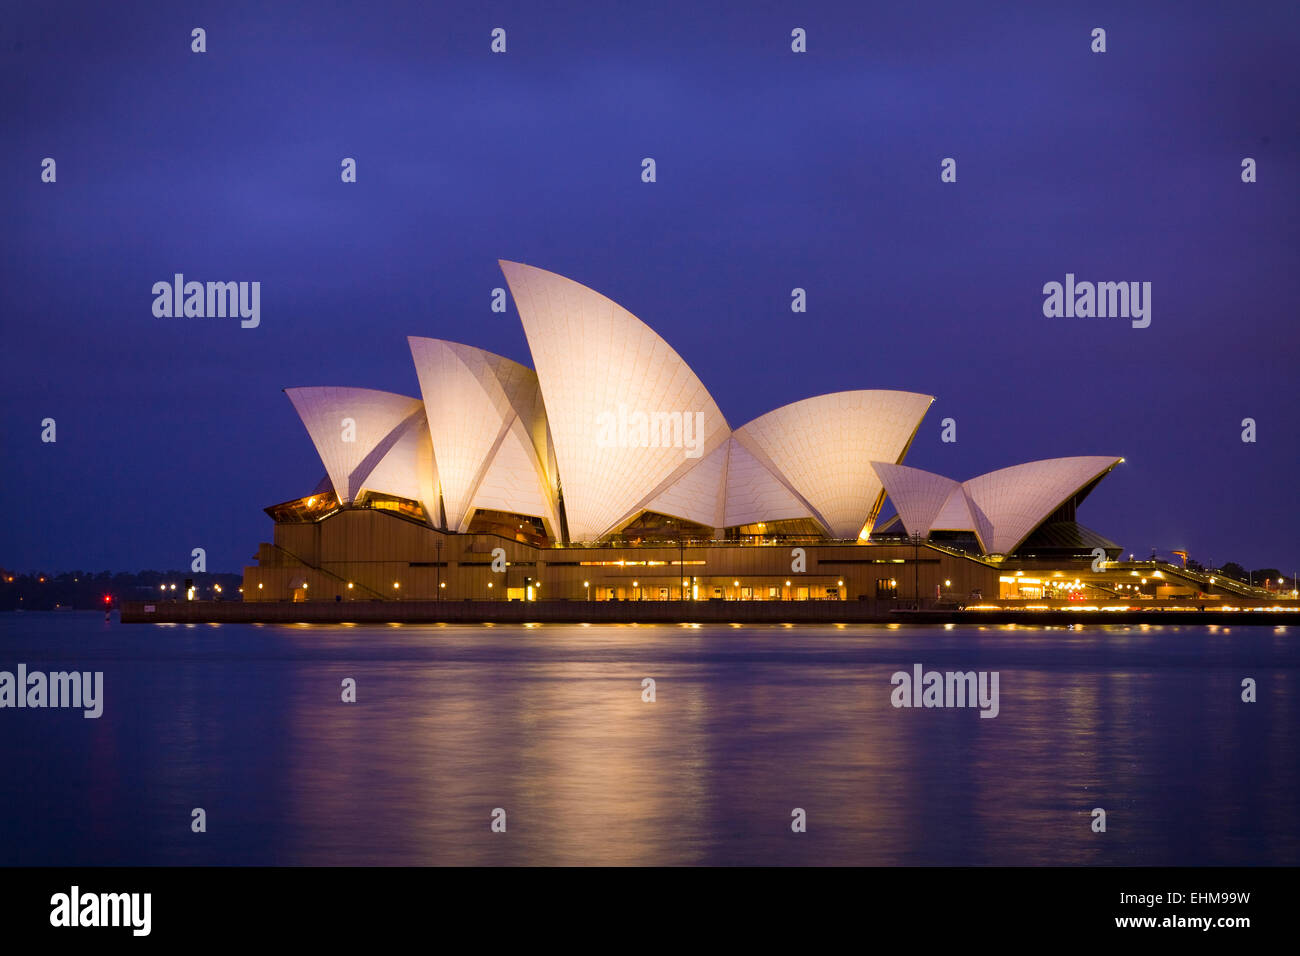 Opéra de Sydney, Australie Photo Stock